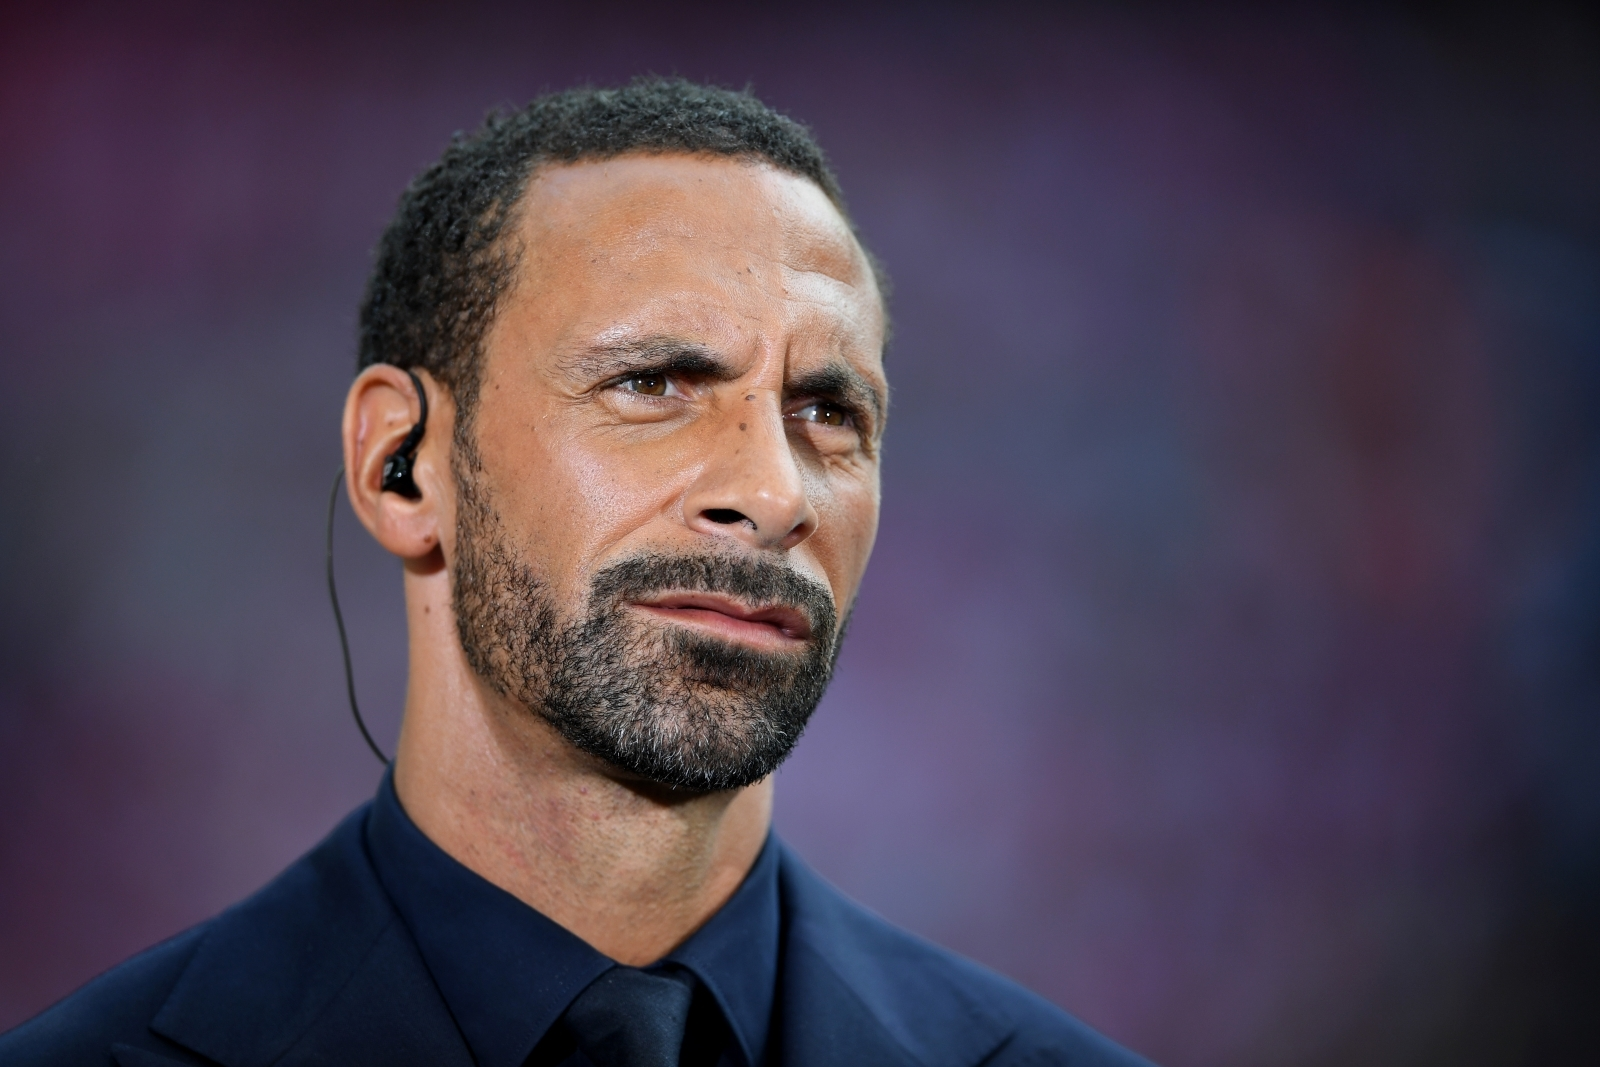 Rio Ferdinand Former Manchester United and England captain